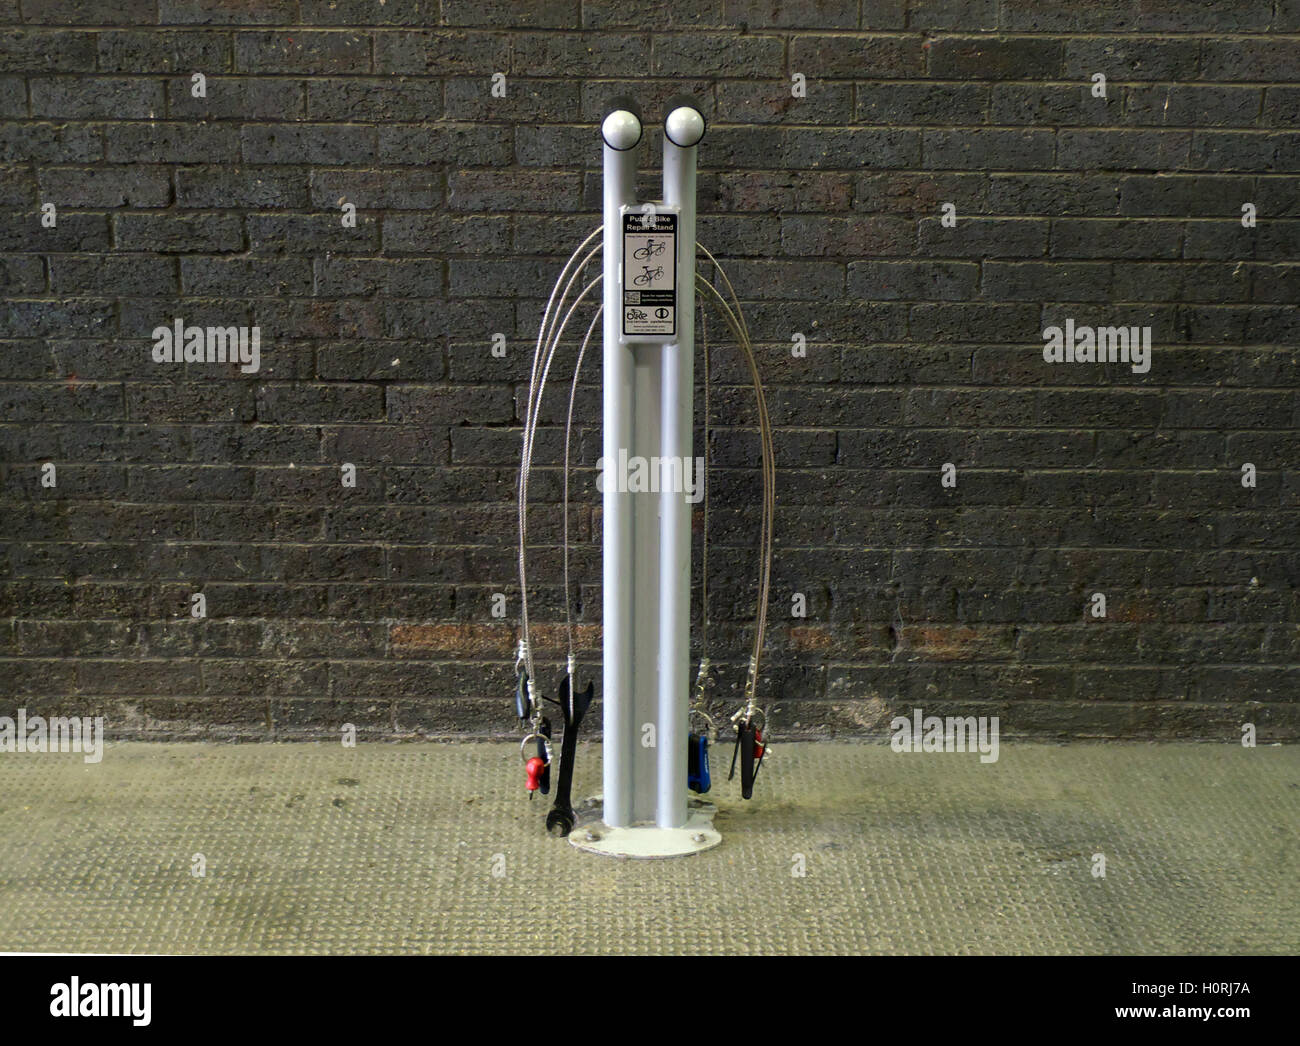 Smarter Ways to Travel (Virgin and Cheshire East Council project). Cycle maintenance tools, Crewe railway station - Stock Image